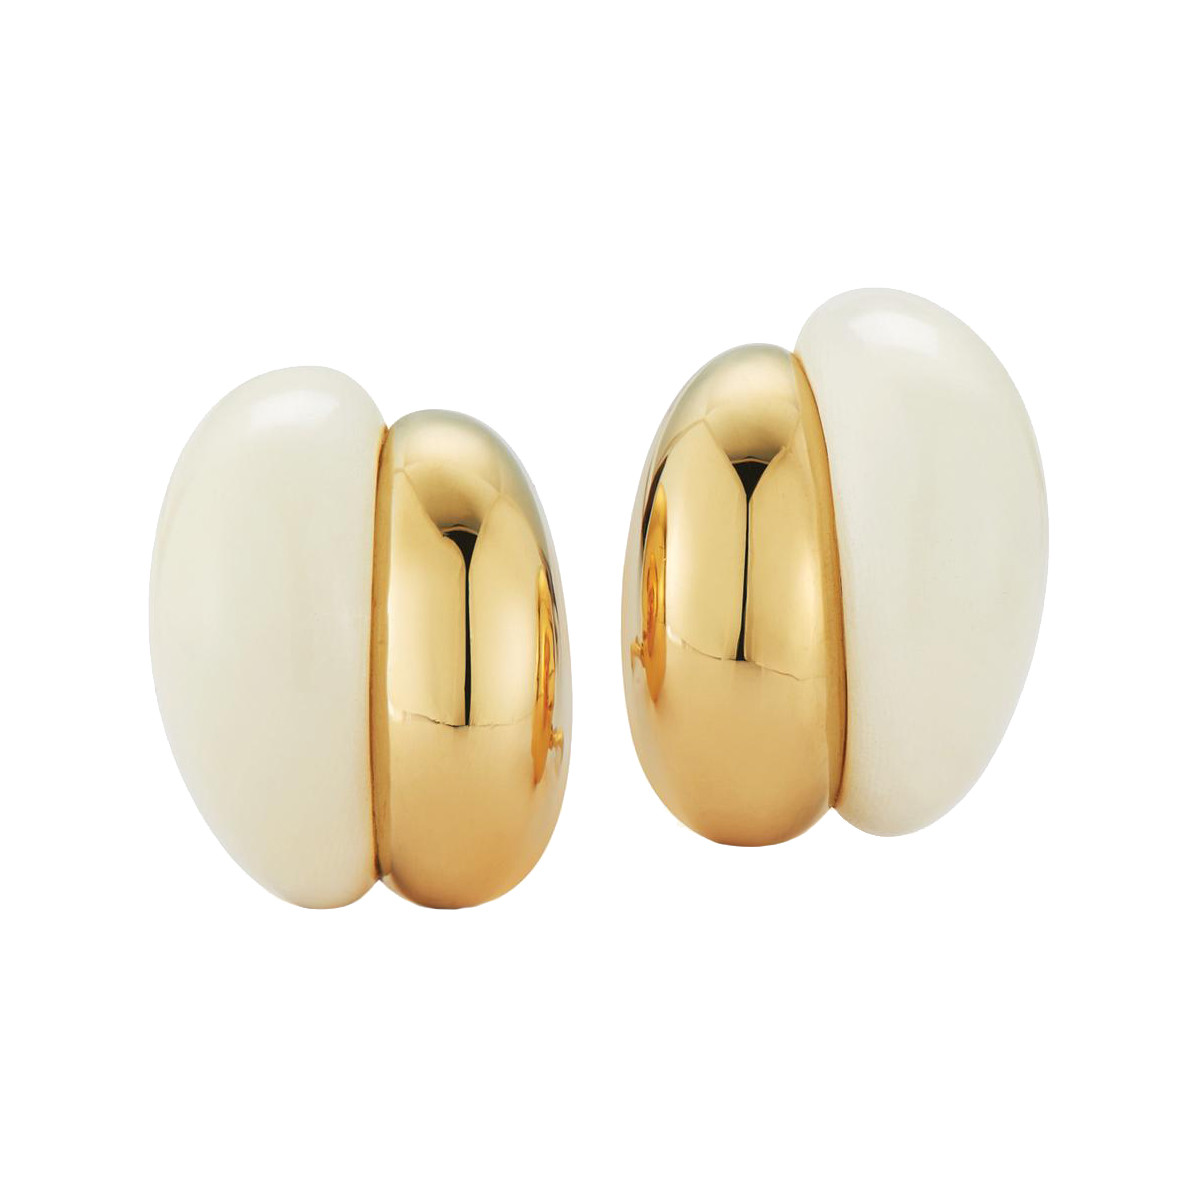 "18k Gold & Tagua Nut ""Silhouette"" Earrings"